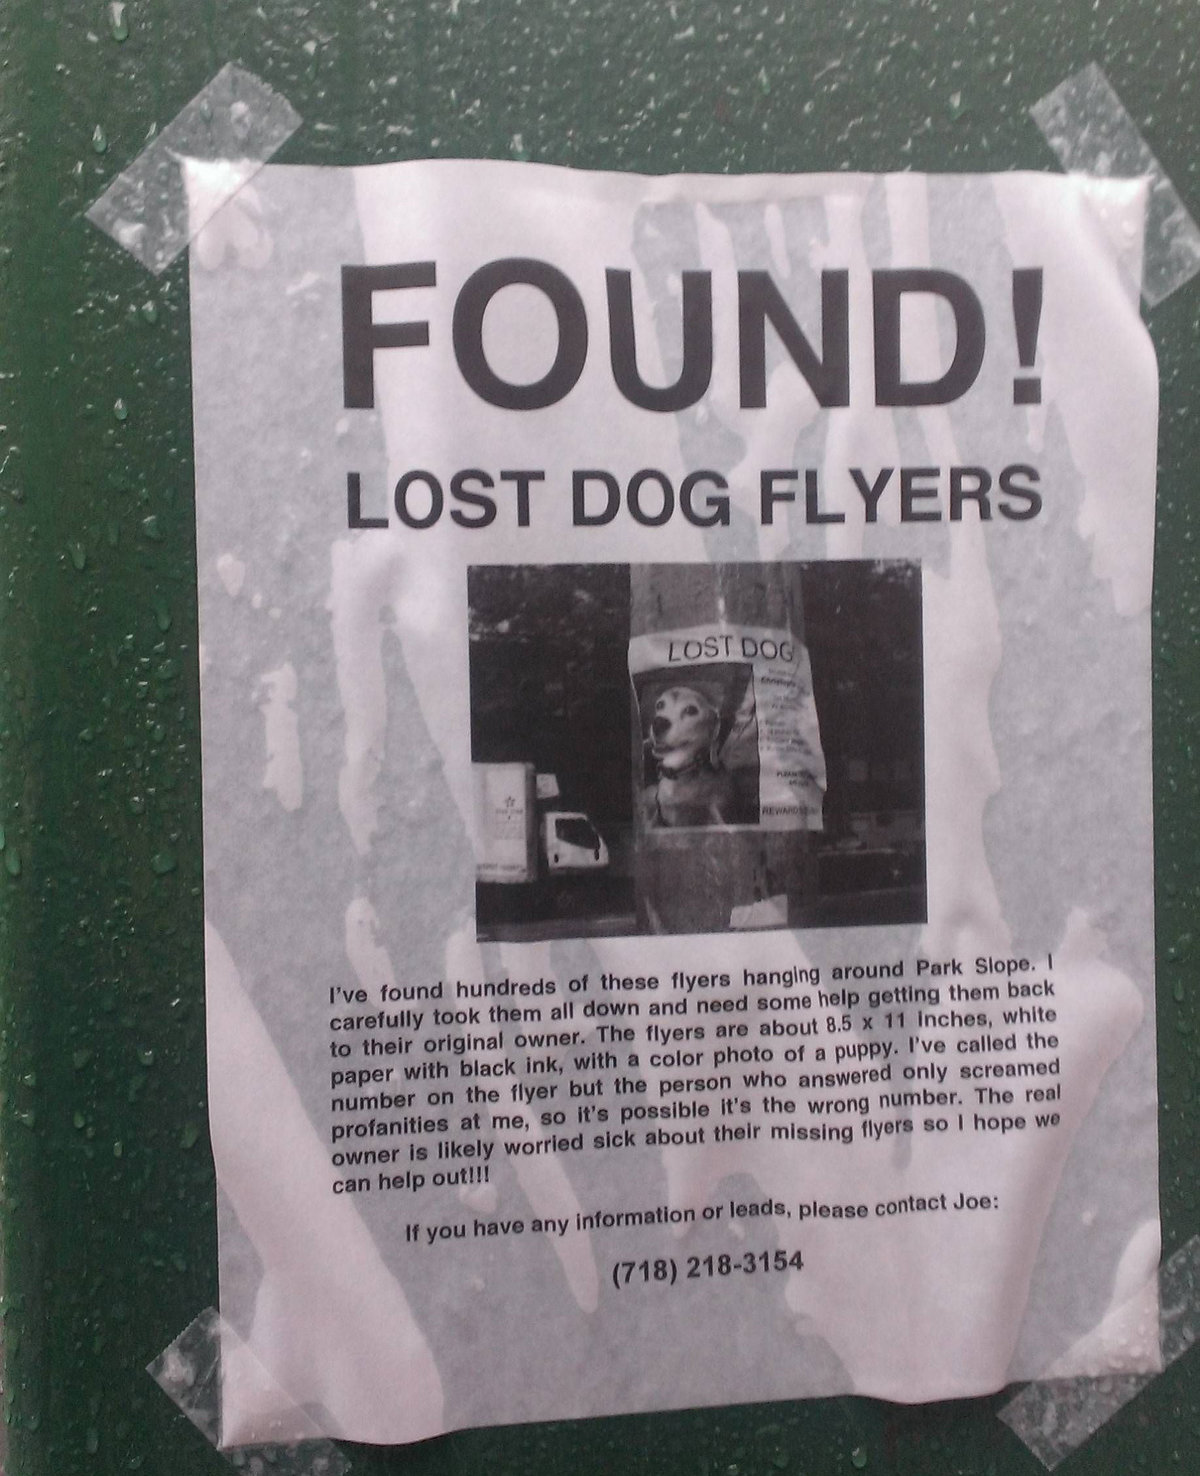 lost dog flyers have been found